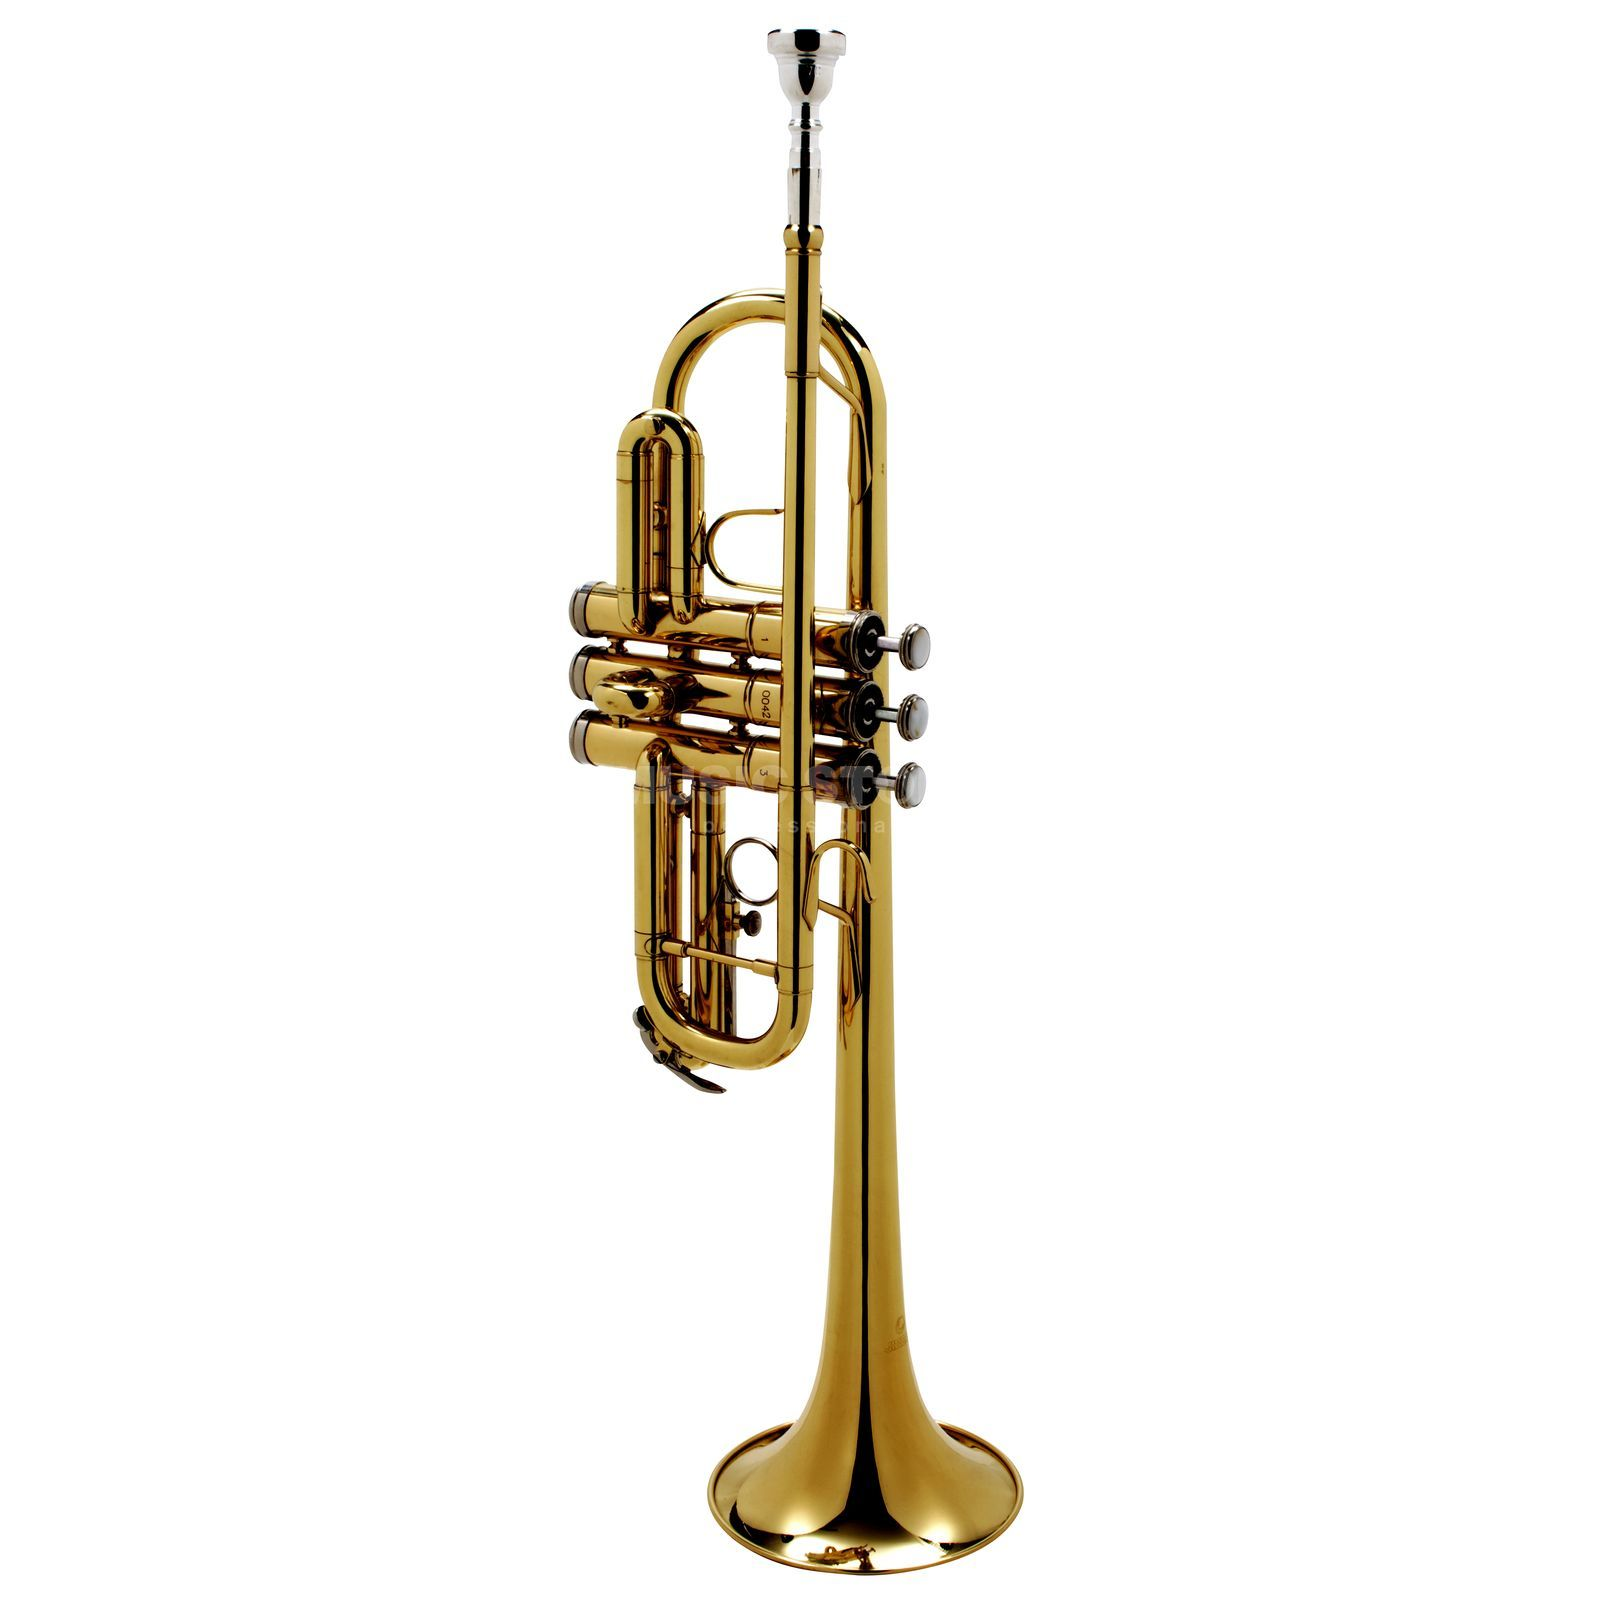 Monzani MZTR-700L C-Trumpet Brass, Lacquered Product Image